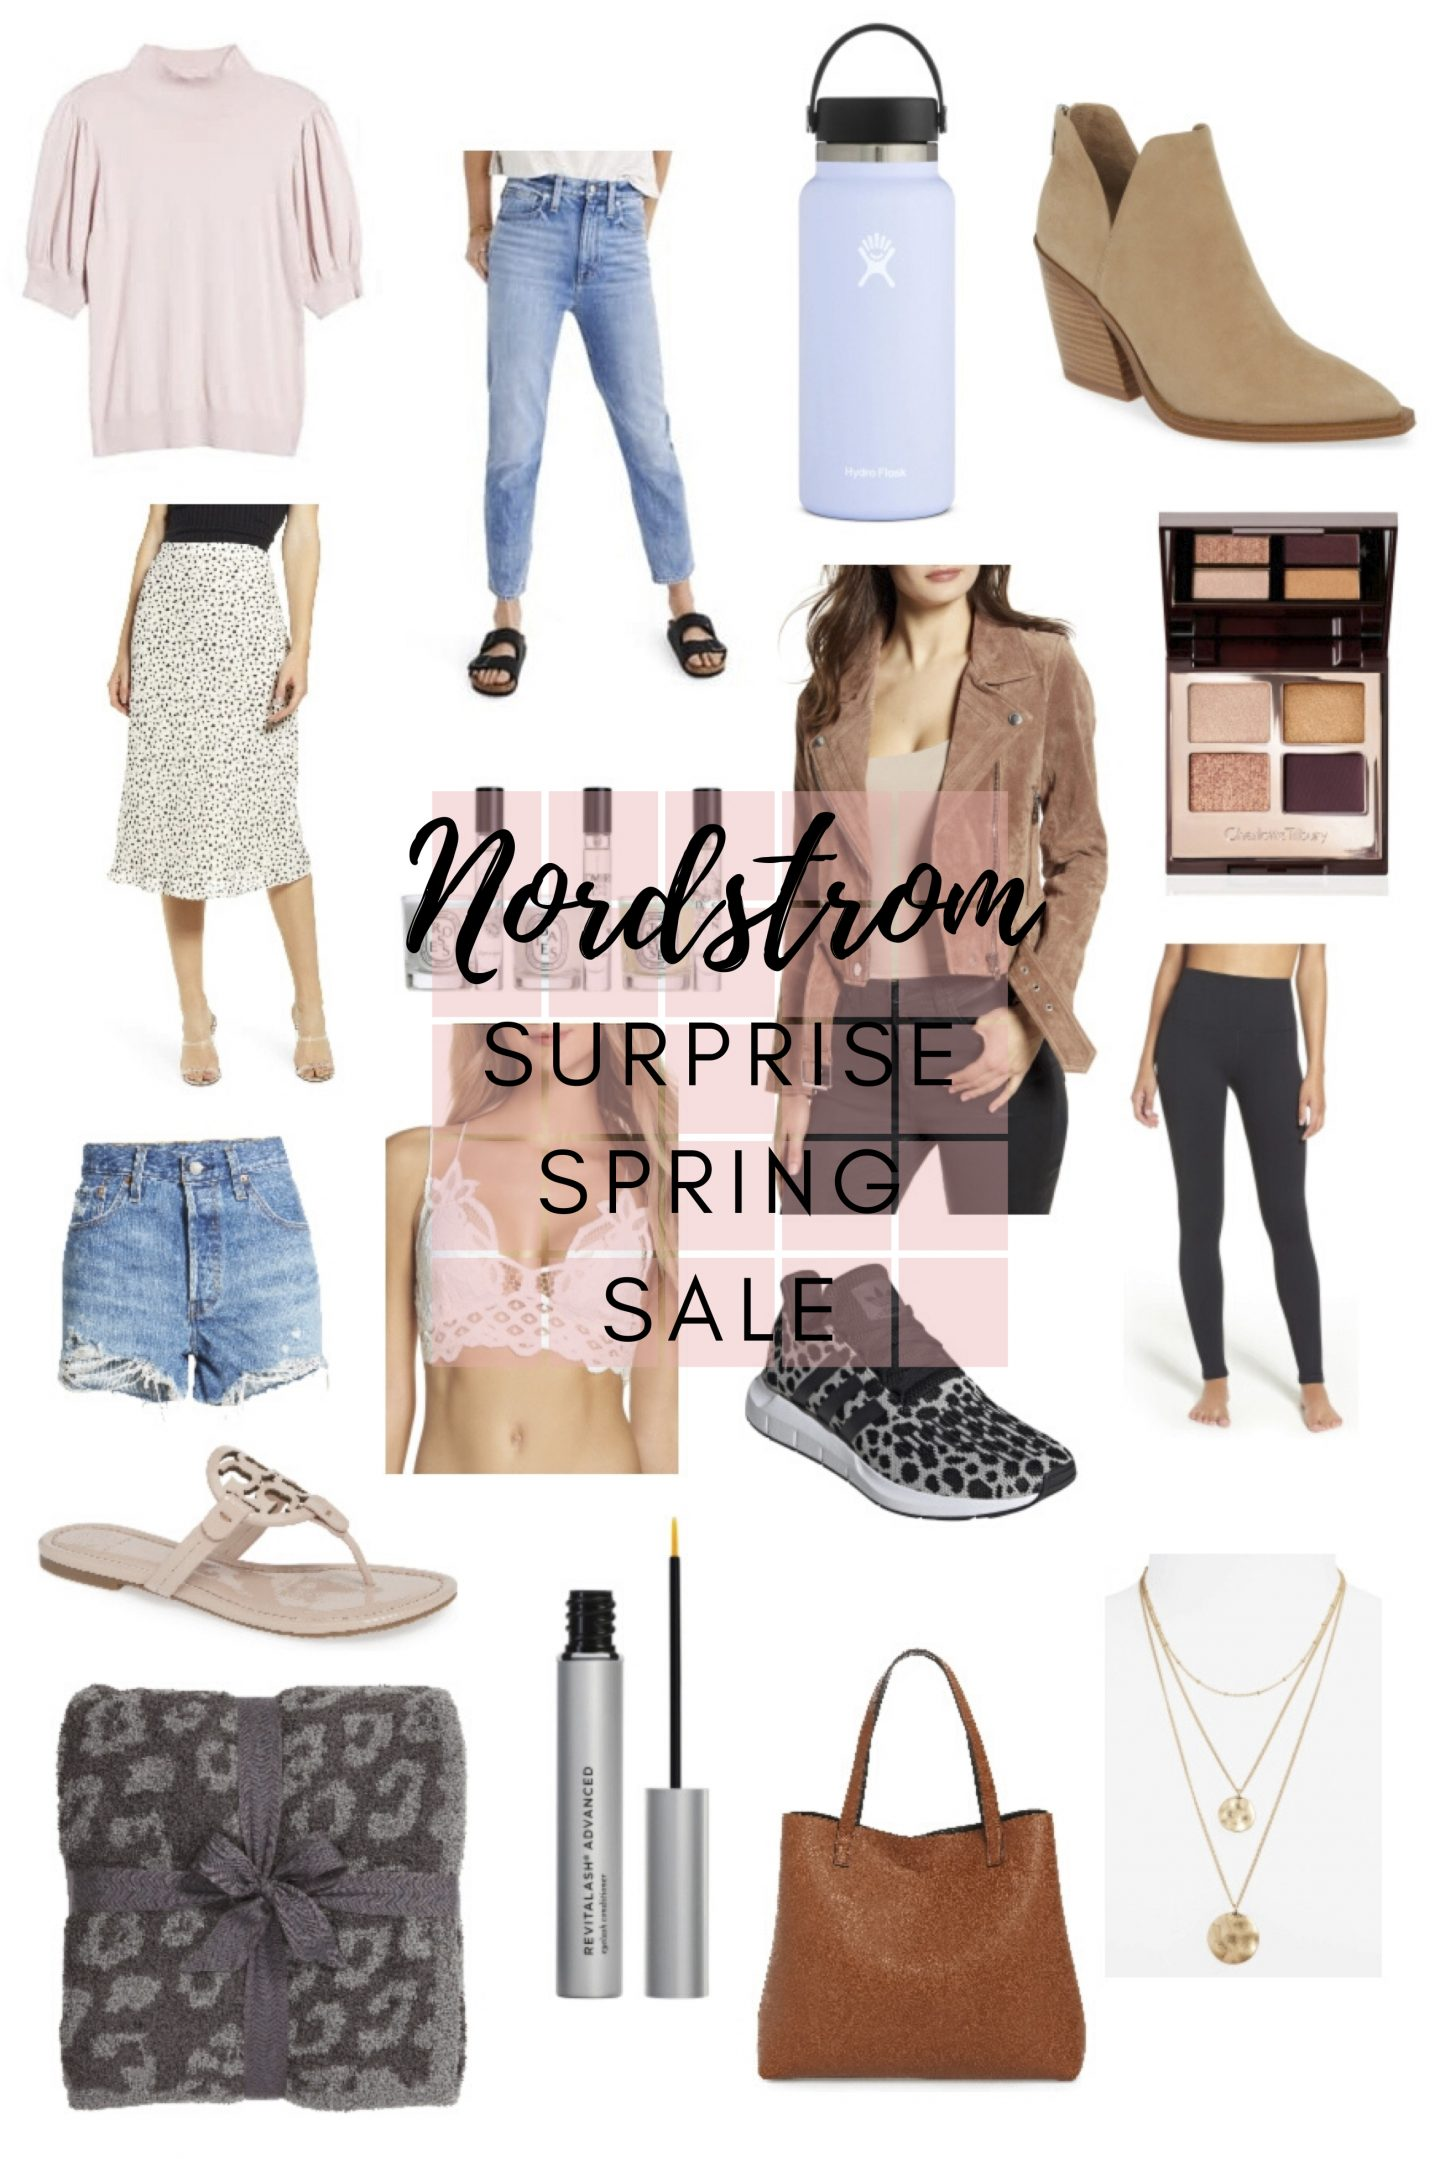 Nordstrom-surprise-spring-sale-25%-off-sitewide